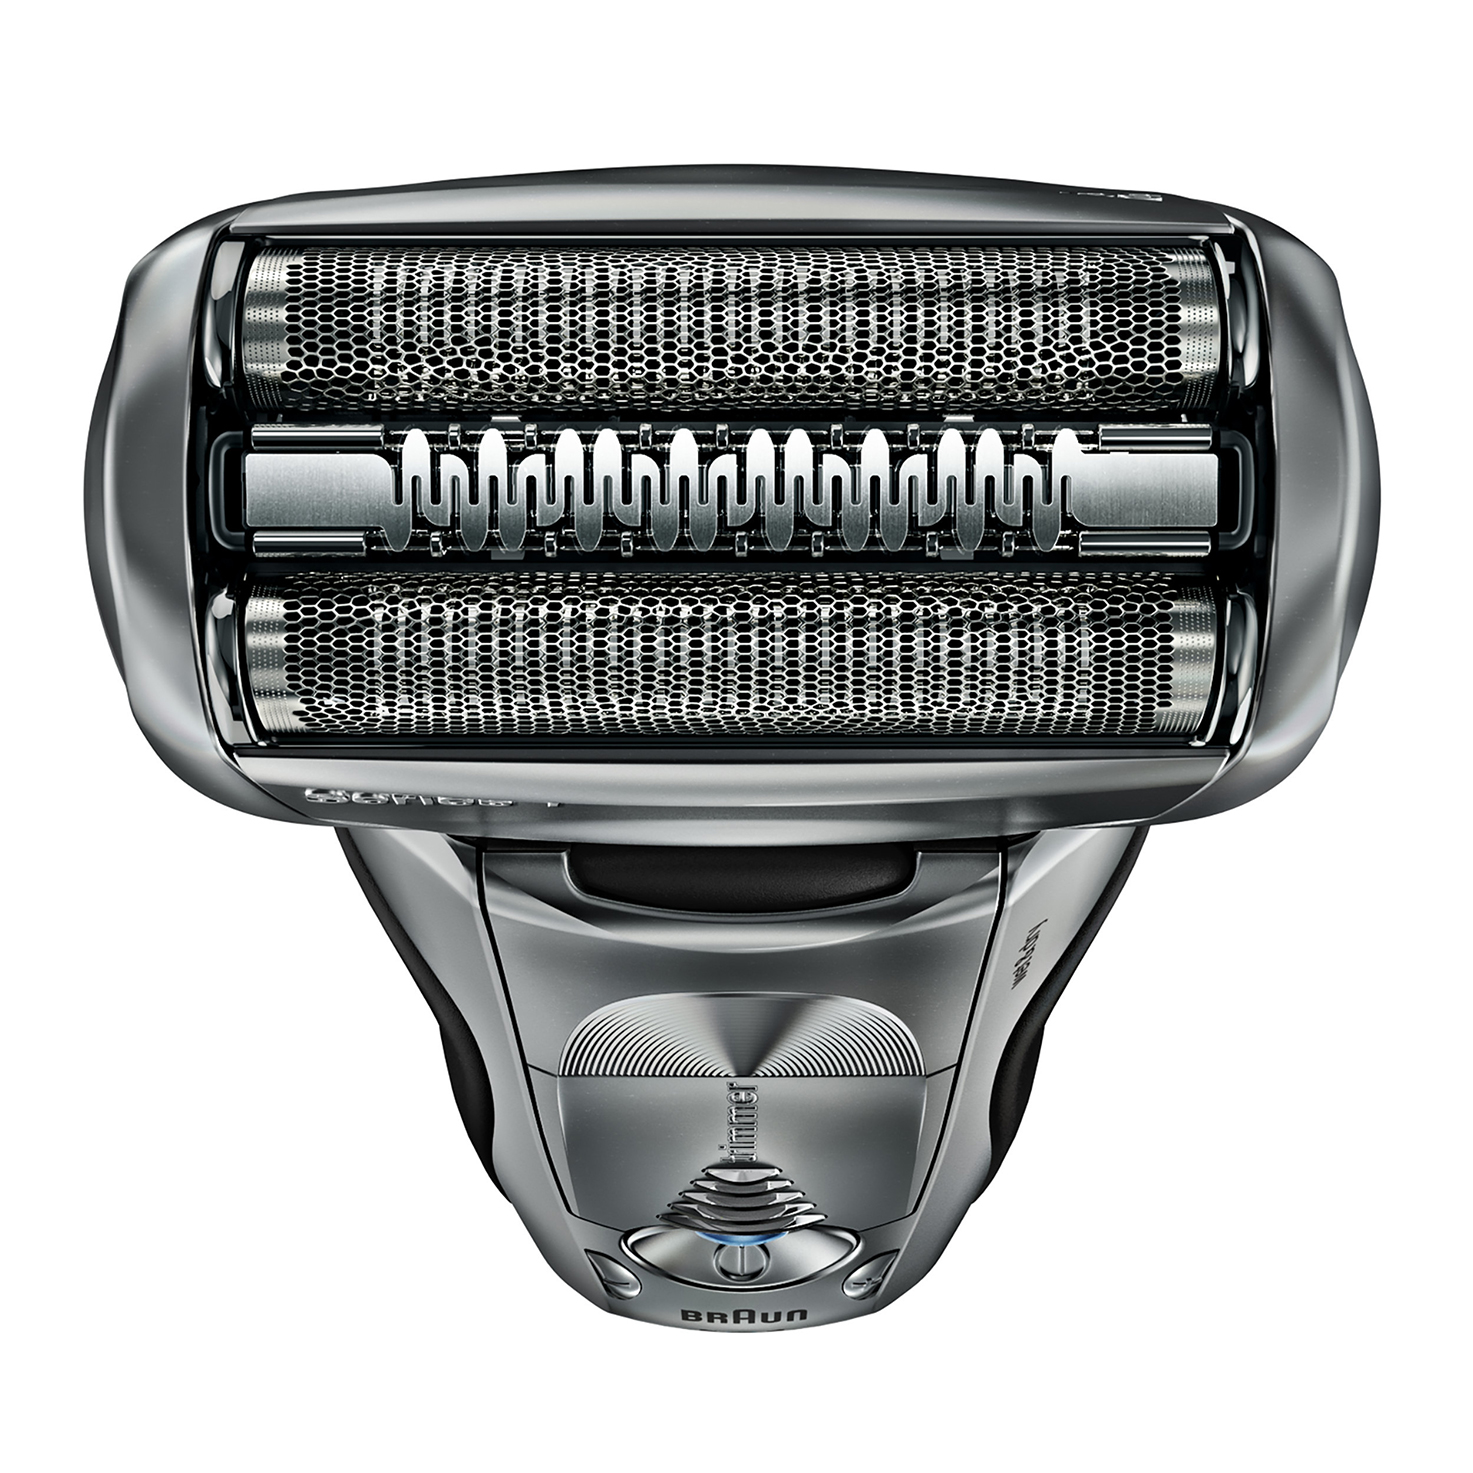 Braun Series 7 silver electric shaver in hand